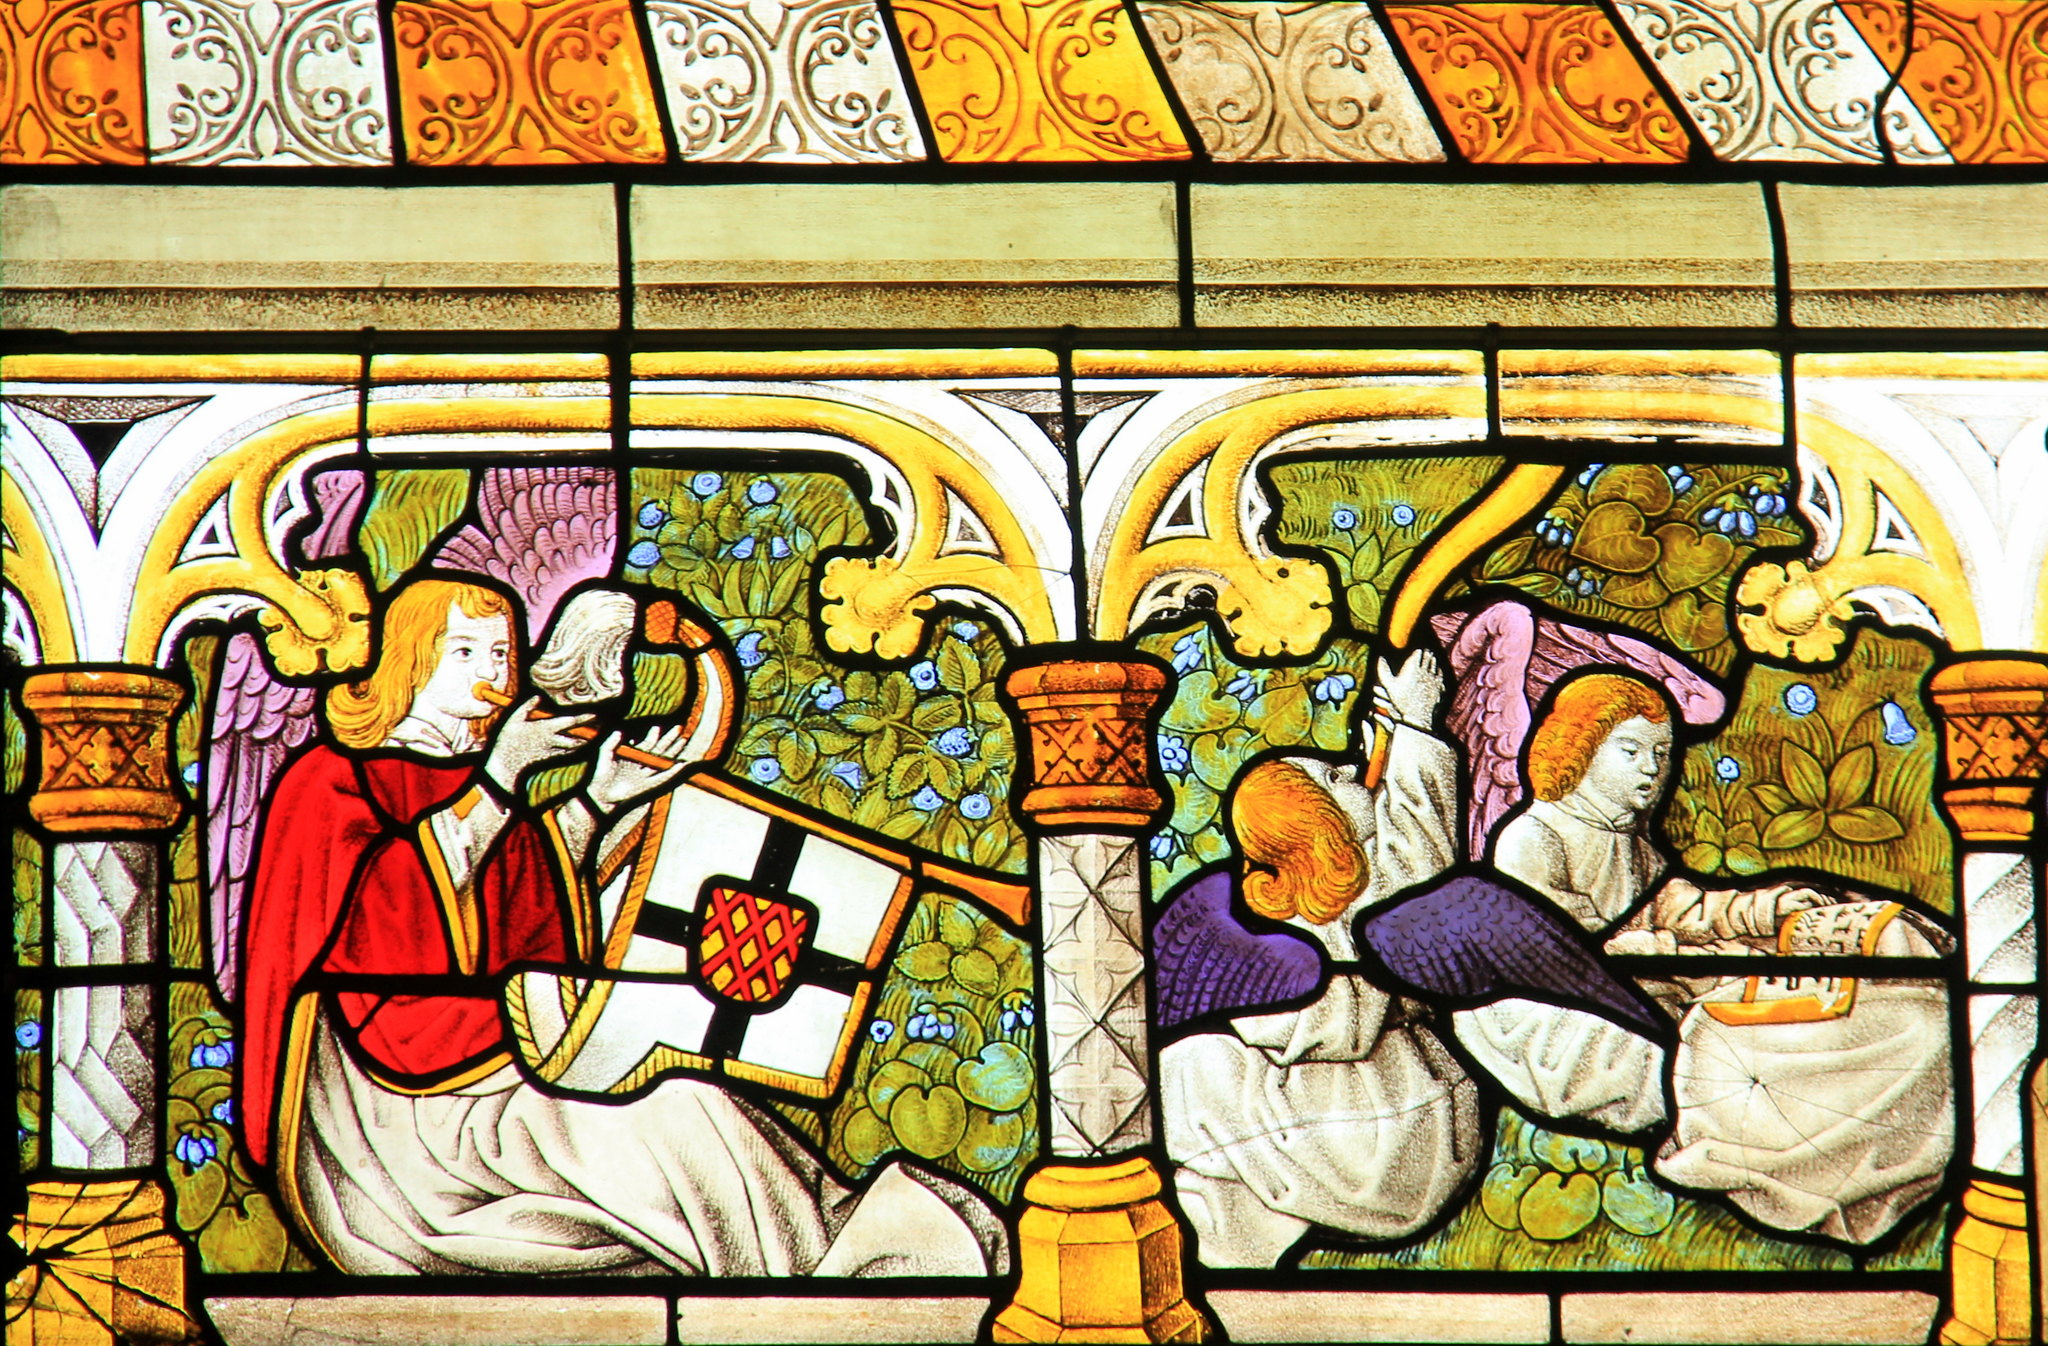 A stained glass window of the Cologne Dom